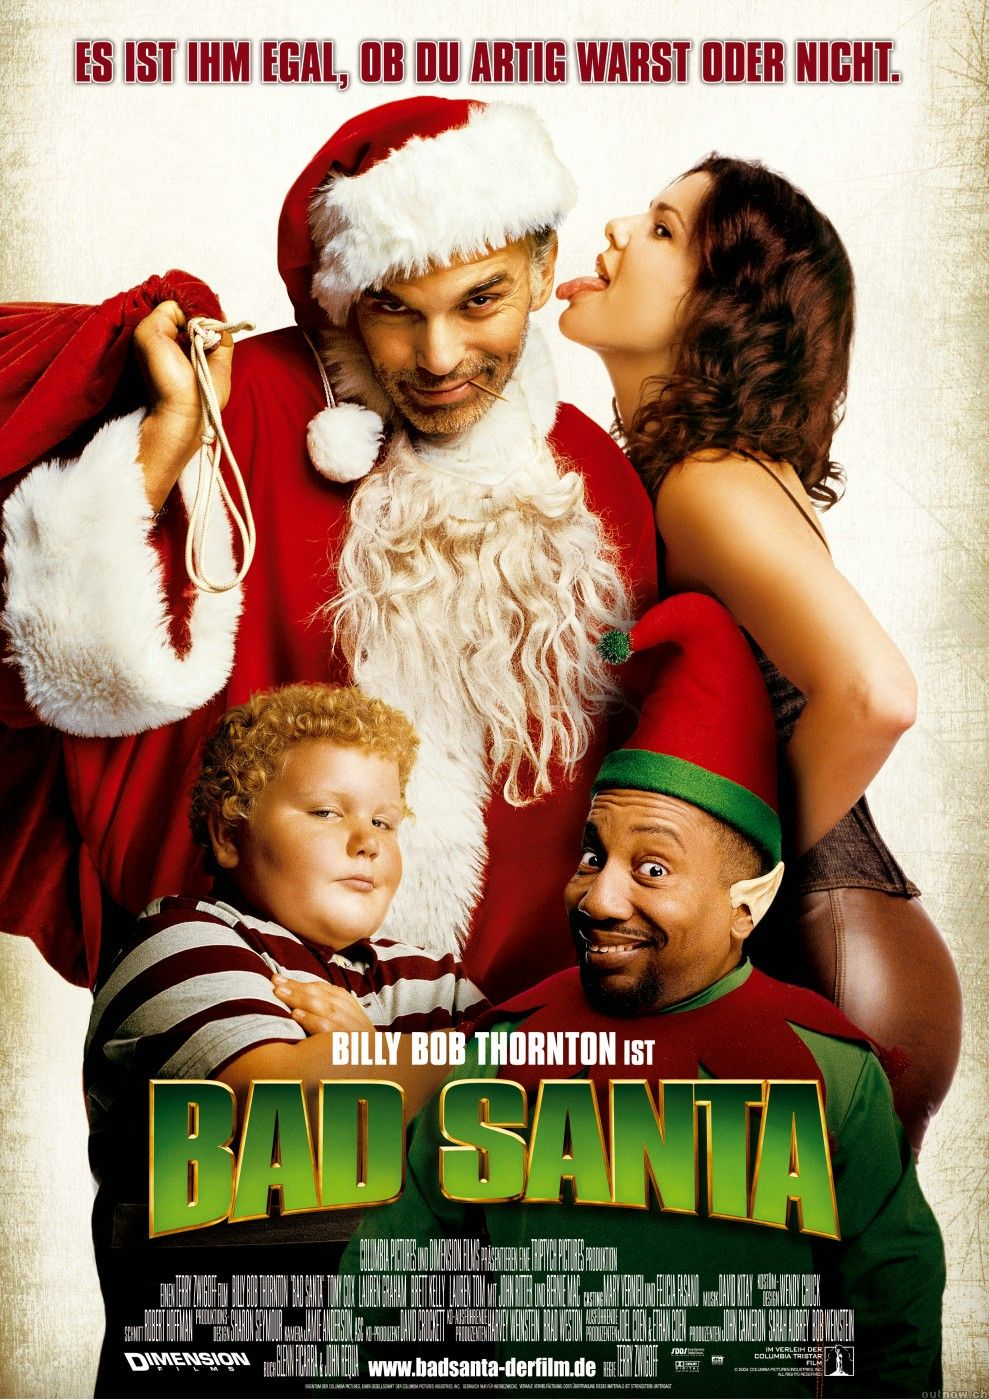 Bad Santa 2003 Usa Coumbia Dimension D Terry Zwigoff Billy Bob Thornton Tony Scott Lauren Graham Bernie Mac Best Christmas Movies Bad Santa Bernie Mac